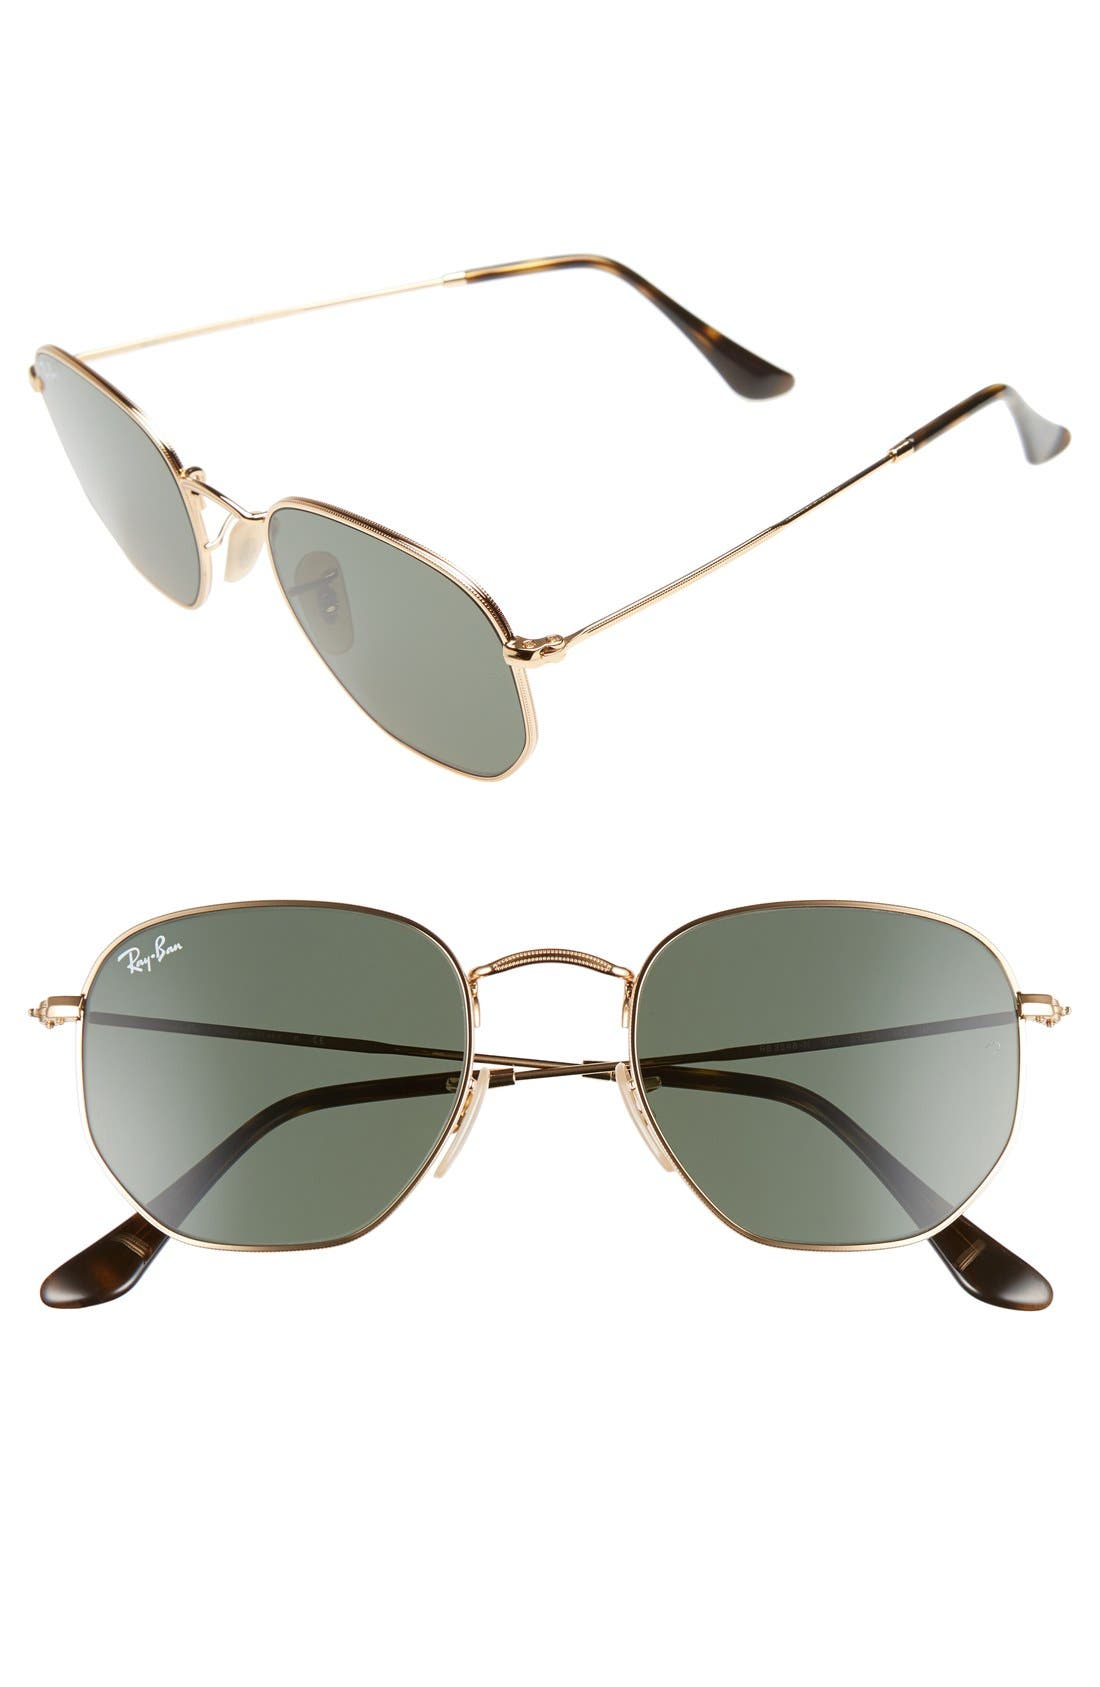 Ray-Ban 51Mm Hexagonal Flat Lens Sunglasses -